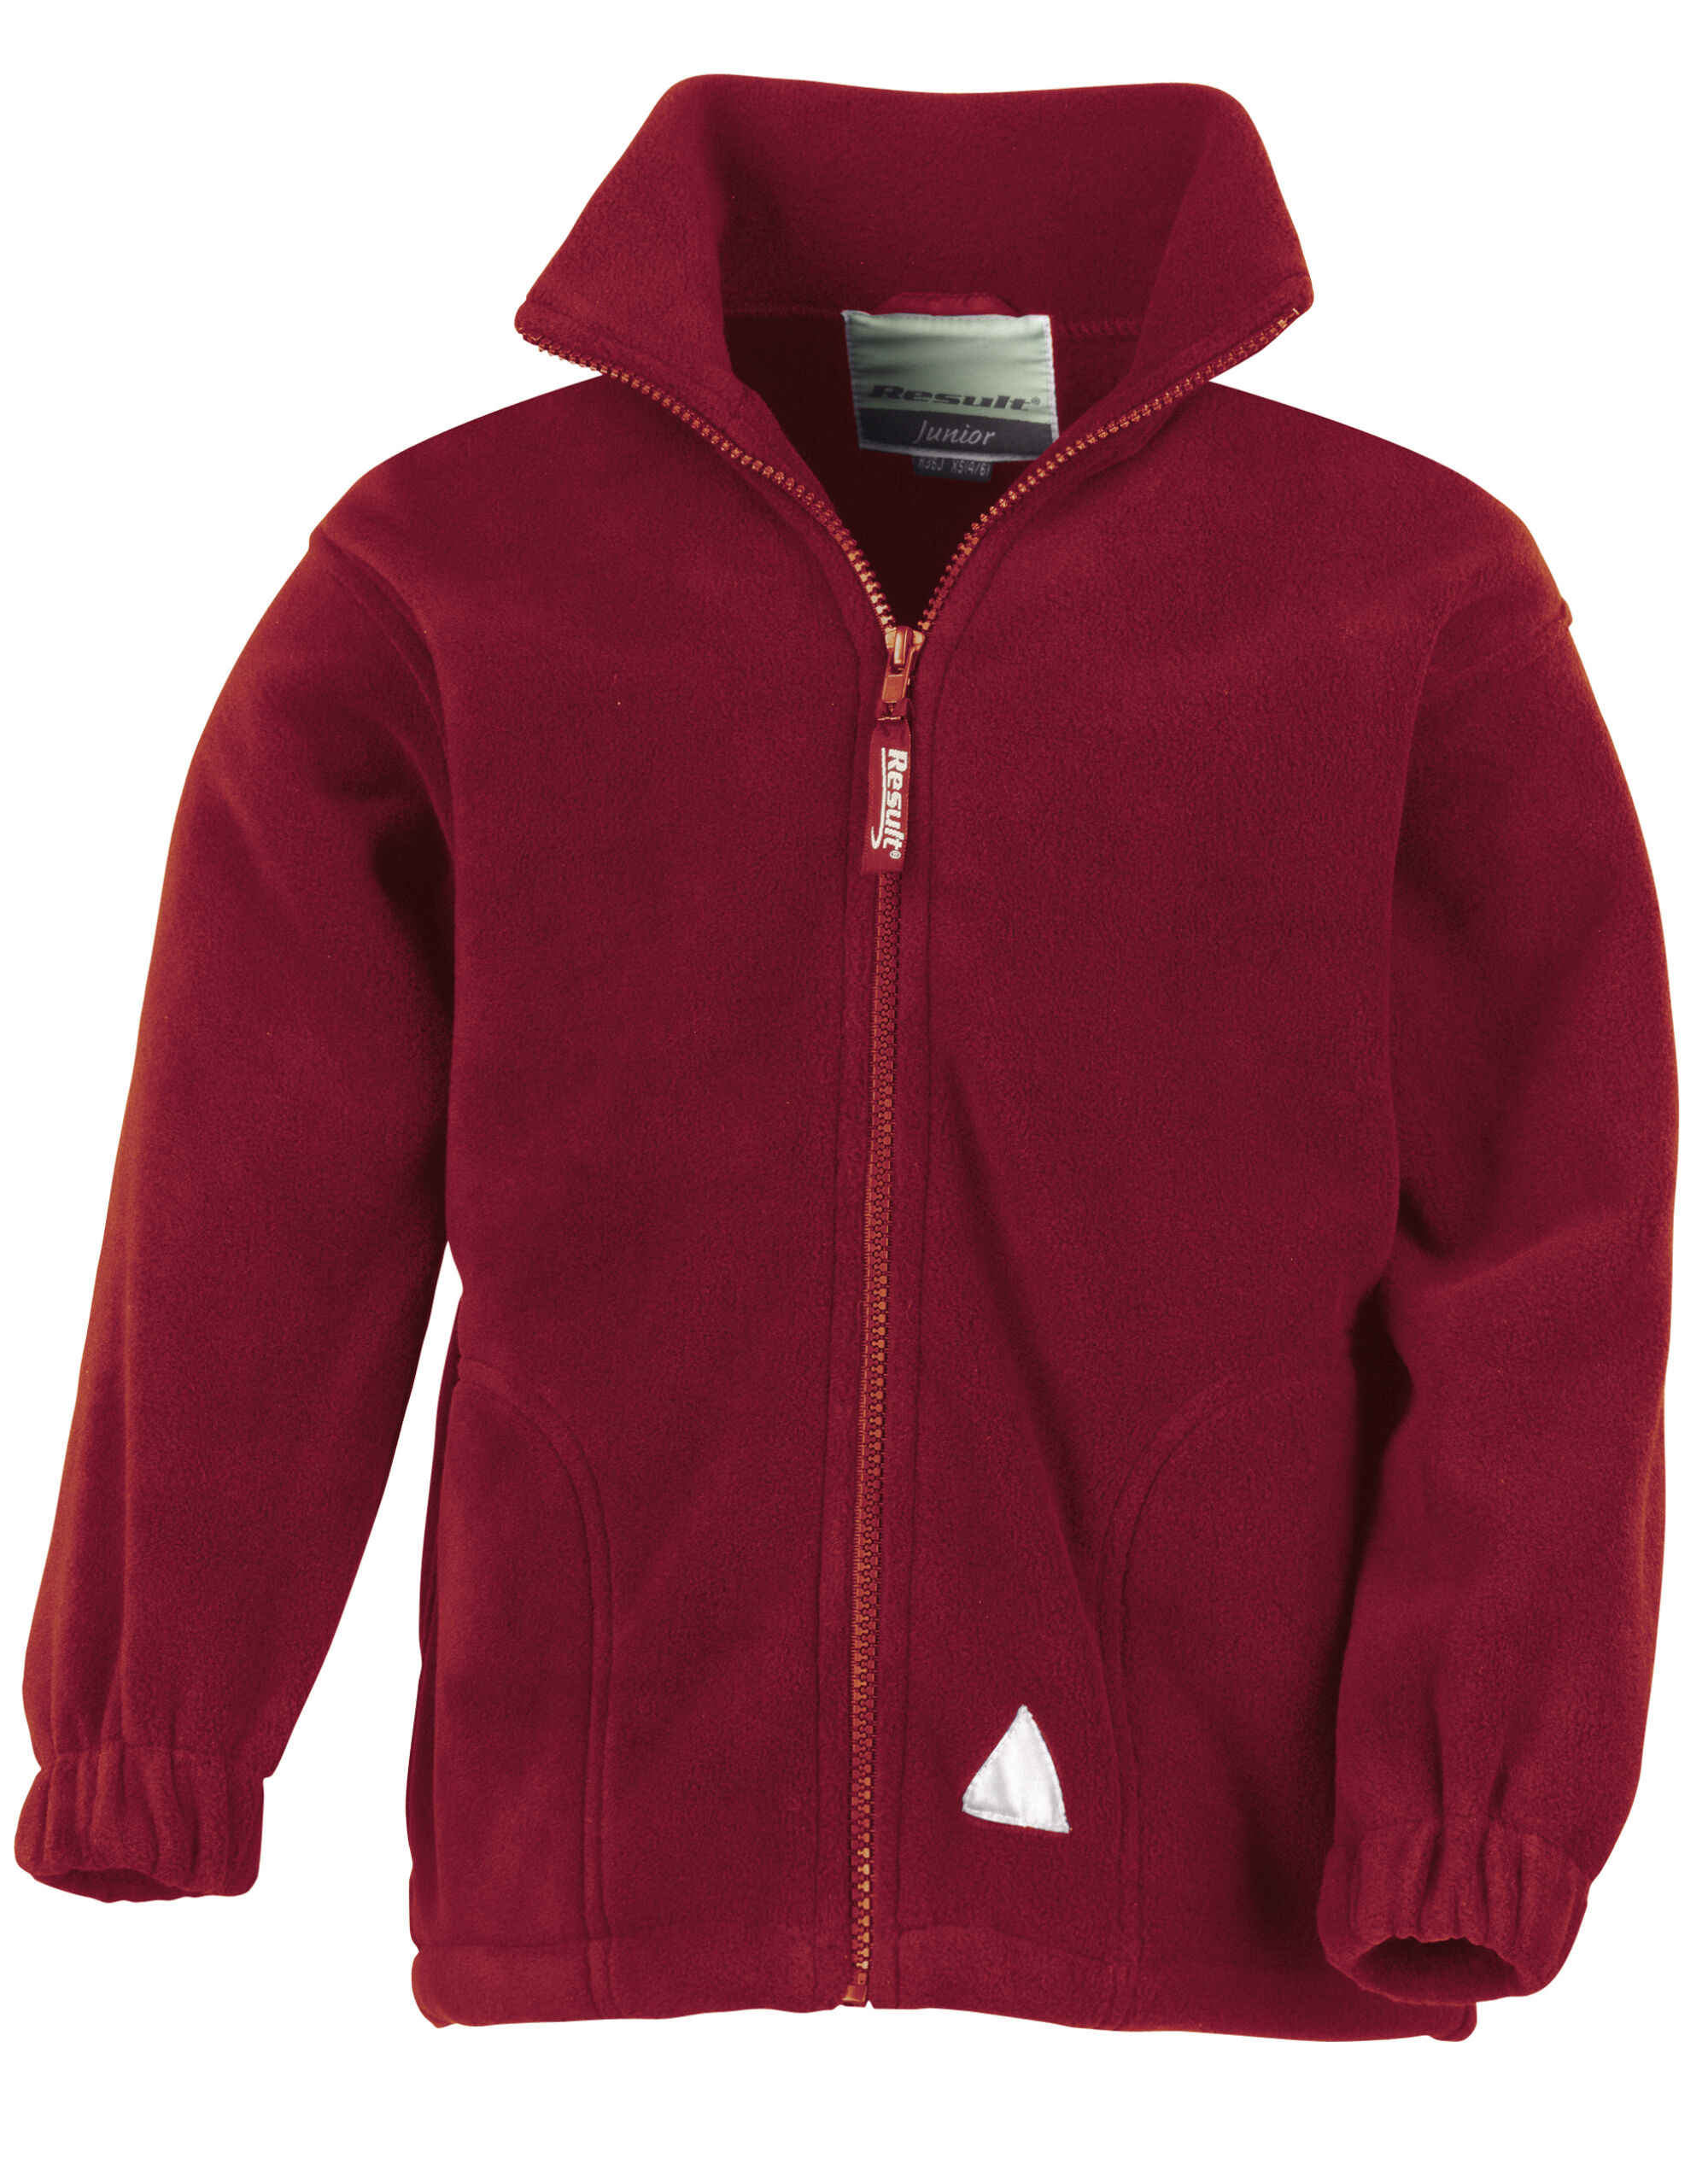 Children's Full Zip Active Fleece Jacket